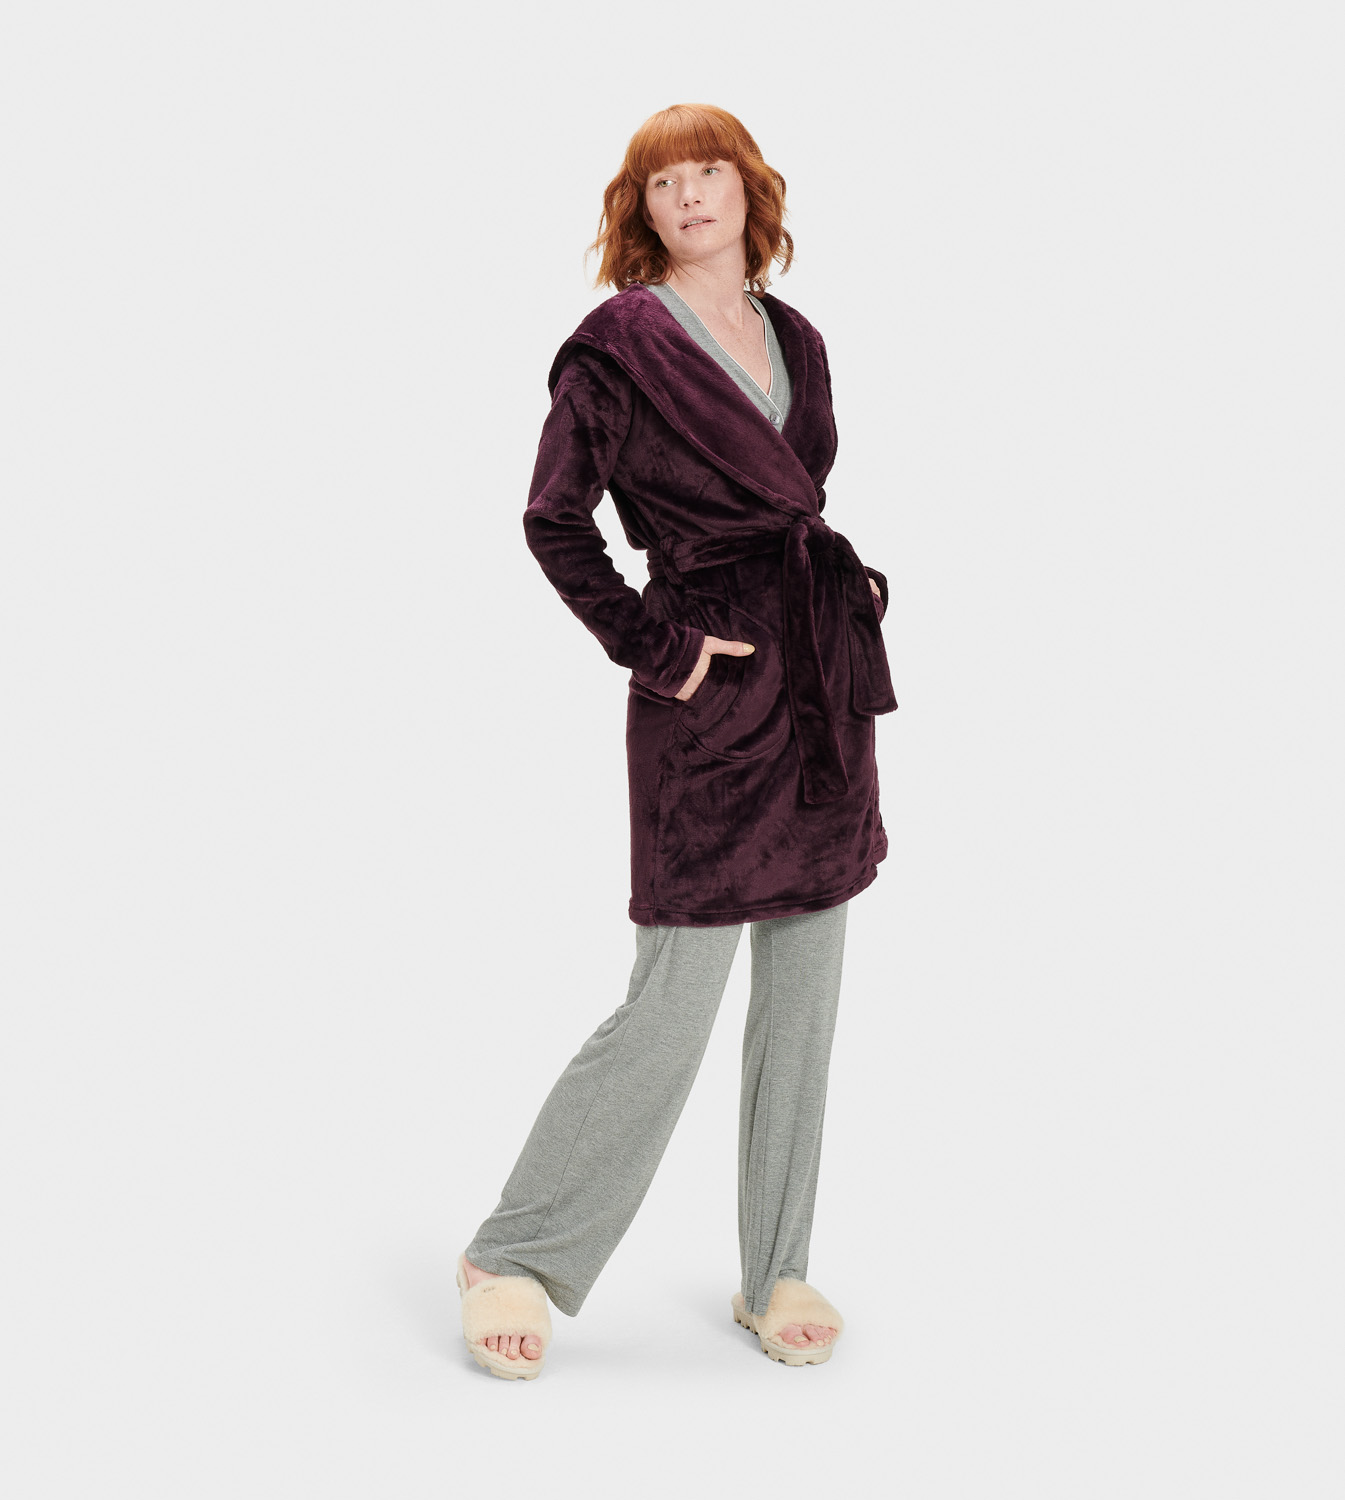 UGG Women's Miranda Fleece Robe Sleepwear in Red, Size M Made from a silky double-face fleece knit, this irresistibly soft robe has the power to turn a lazy day at home into a rejuvenating staycation. Double Face Fleece Knit - 100% Polyester. Hooded shawl collar robe. On-seam side pockets. Self belt. Straight hem. UGG woven flag label at hand pocket. 36  center back length [Size S]. UGG Women's Miranda Fleece Robe Sleepwear in Red, Size M